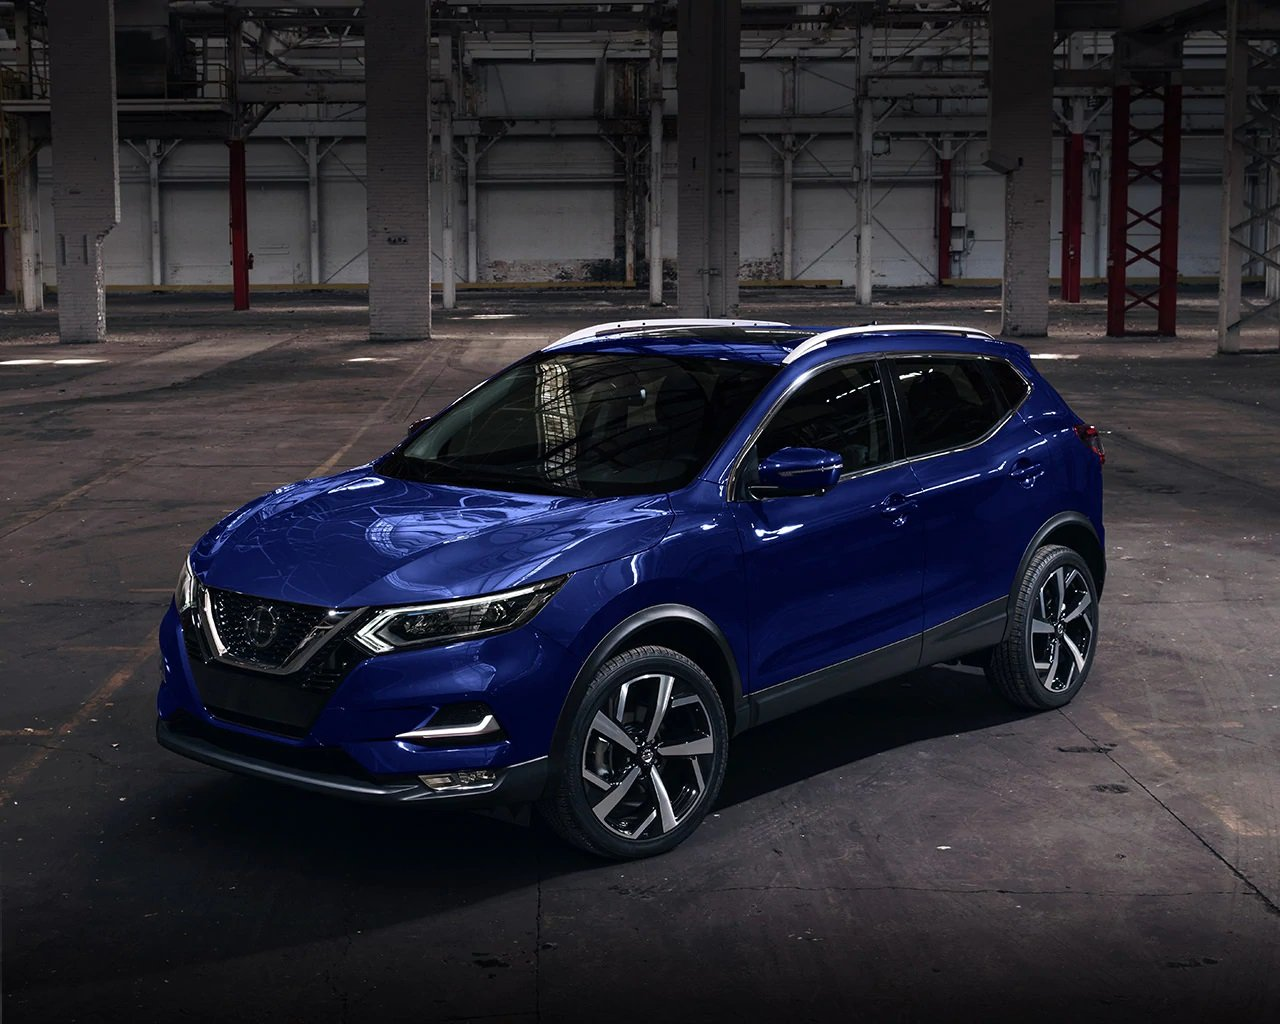 angled-view-of-dark-blue-2020-nissan-qashqai-crossover-mobile